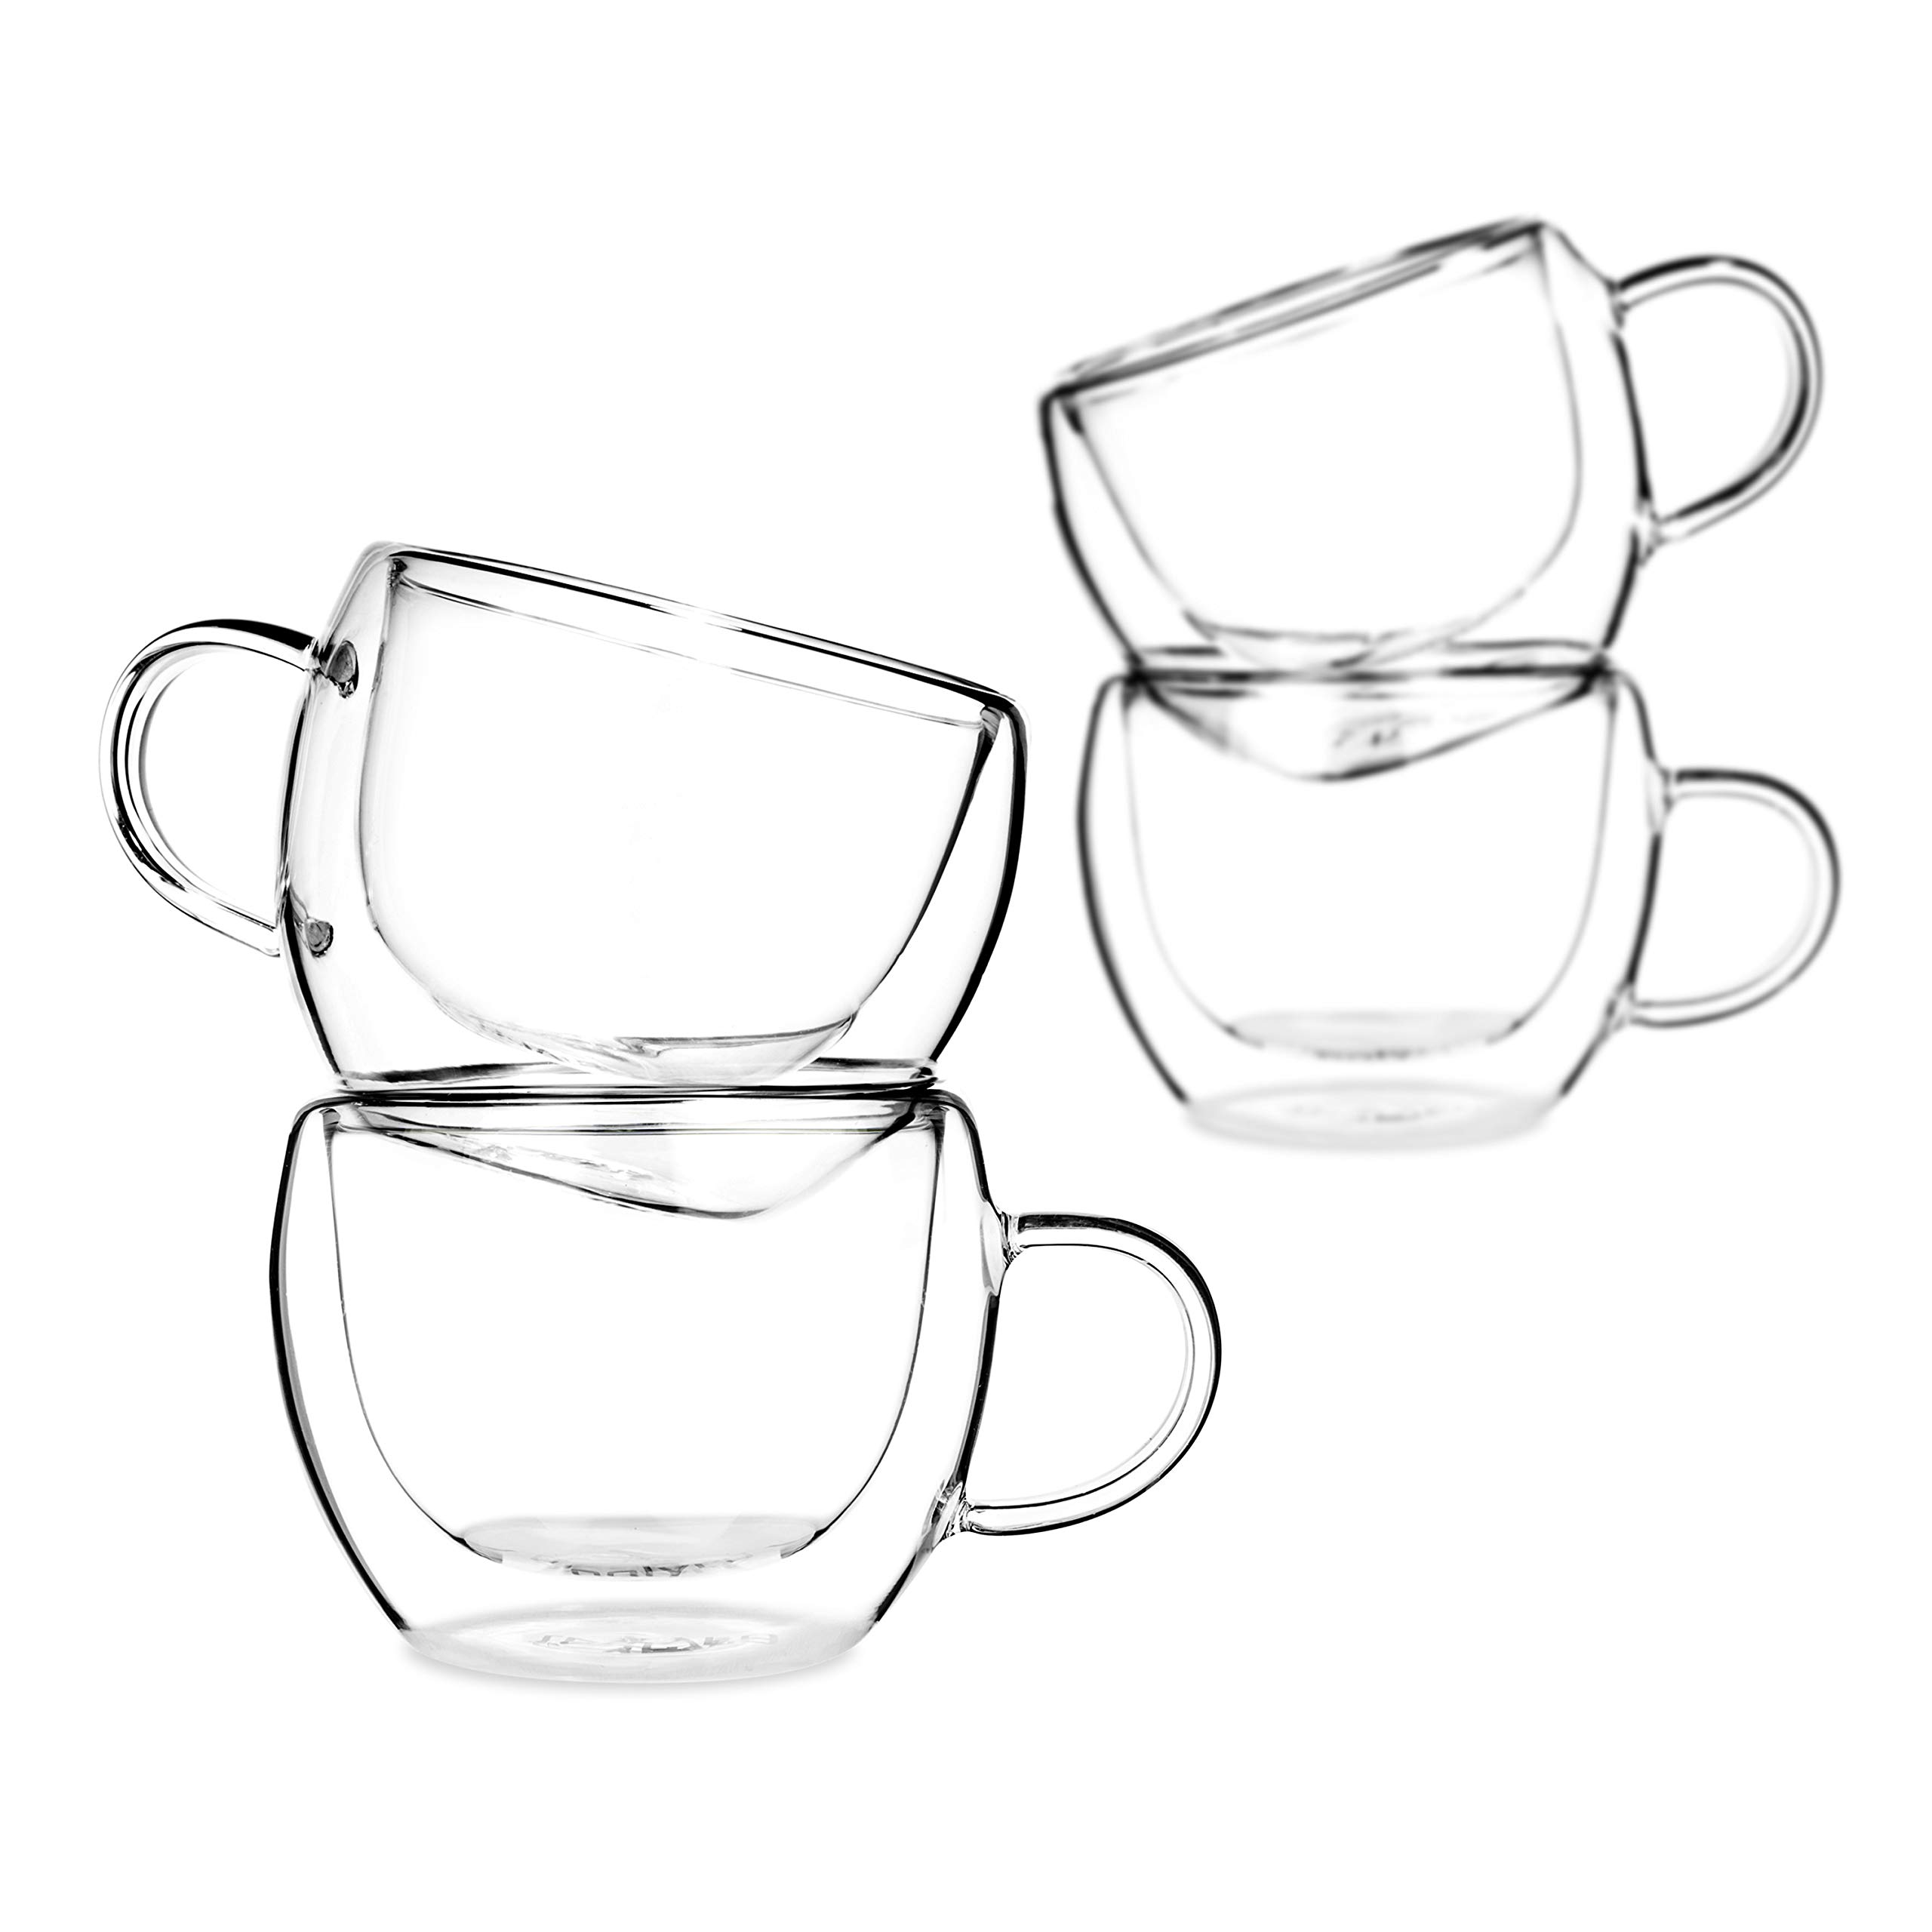 Tealyra - Universe 8-Ounce - Set of 4 - Double Wall Glasses with Handle - Espresso Coffee - Tea - Cappuccino - Clear Cups - Heatproof Insulating - Keeps Beverages Hot - 230ml by Tealyra (Image #1)